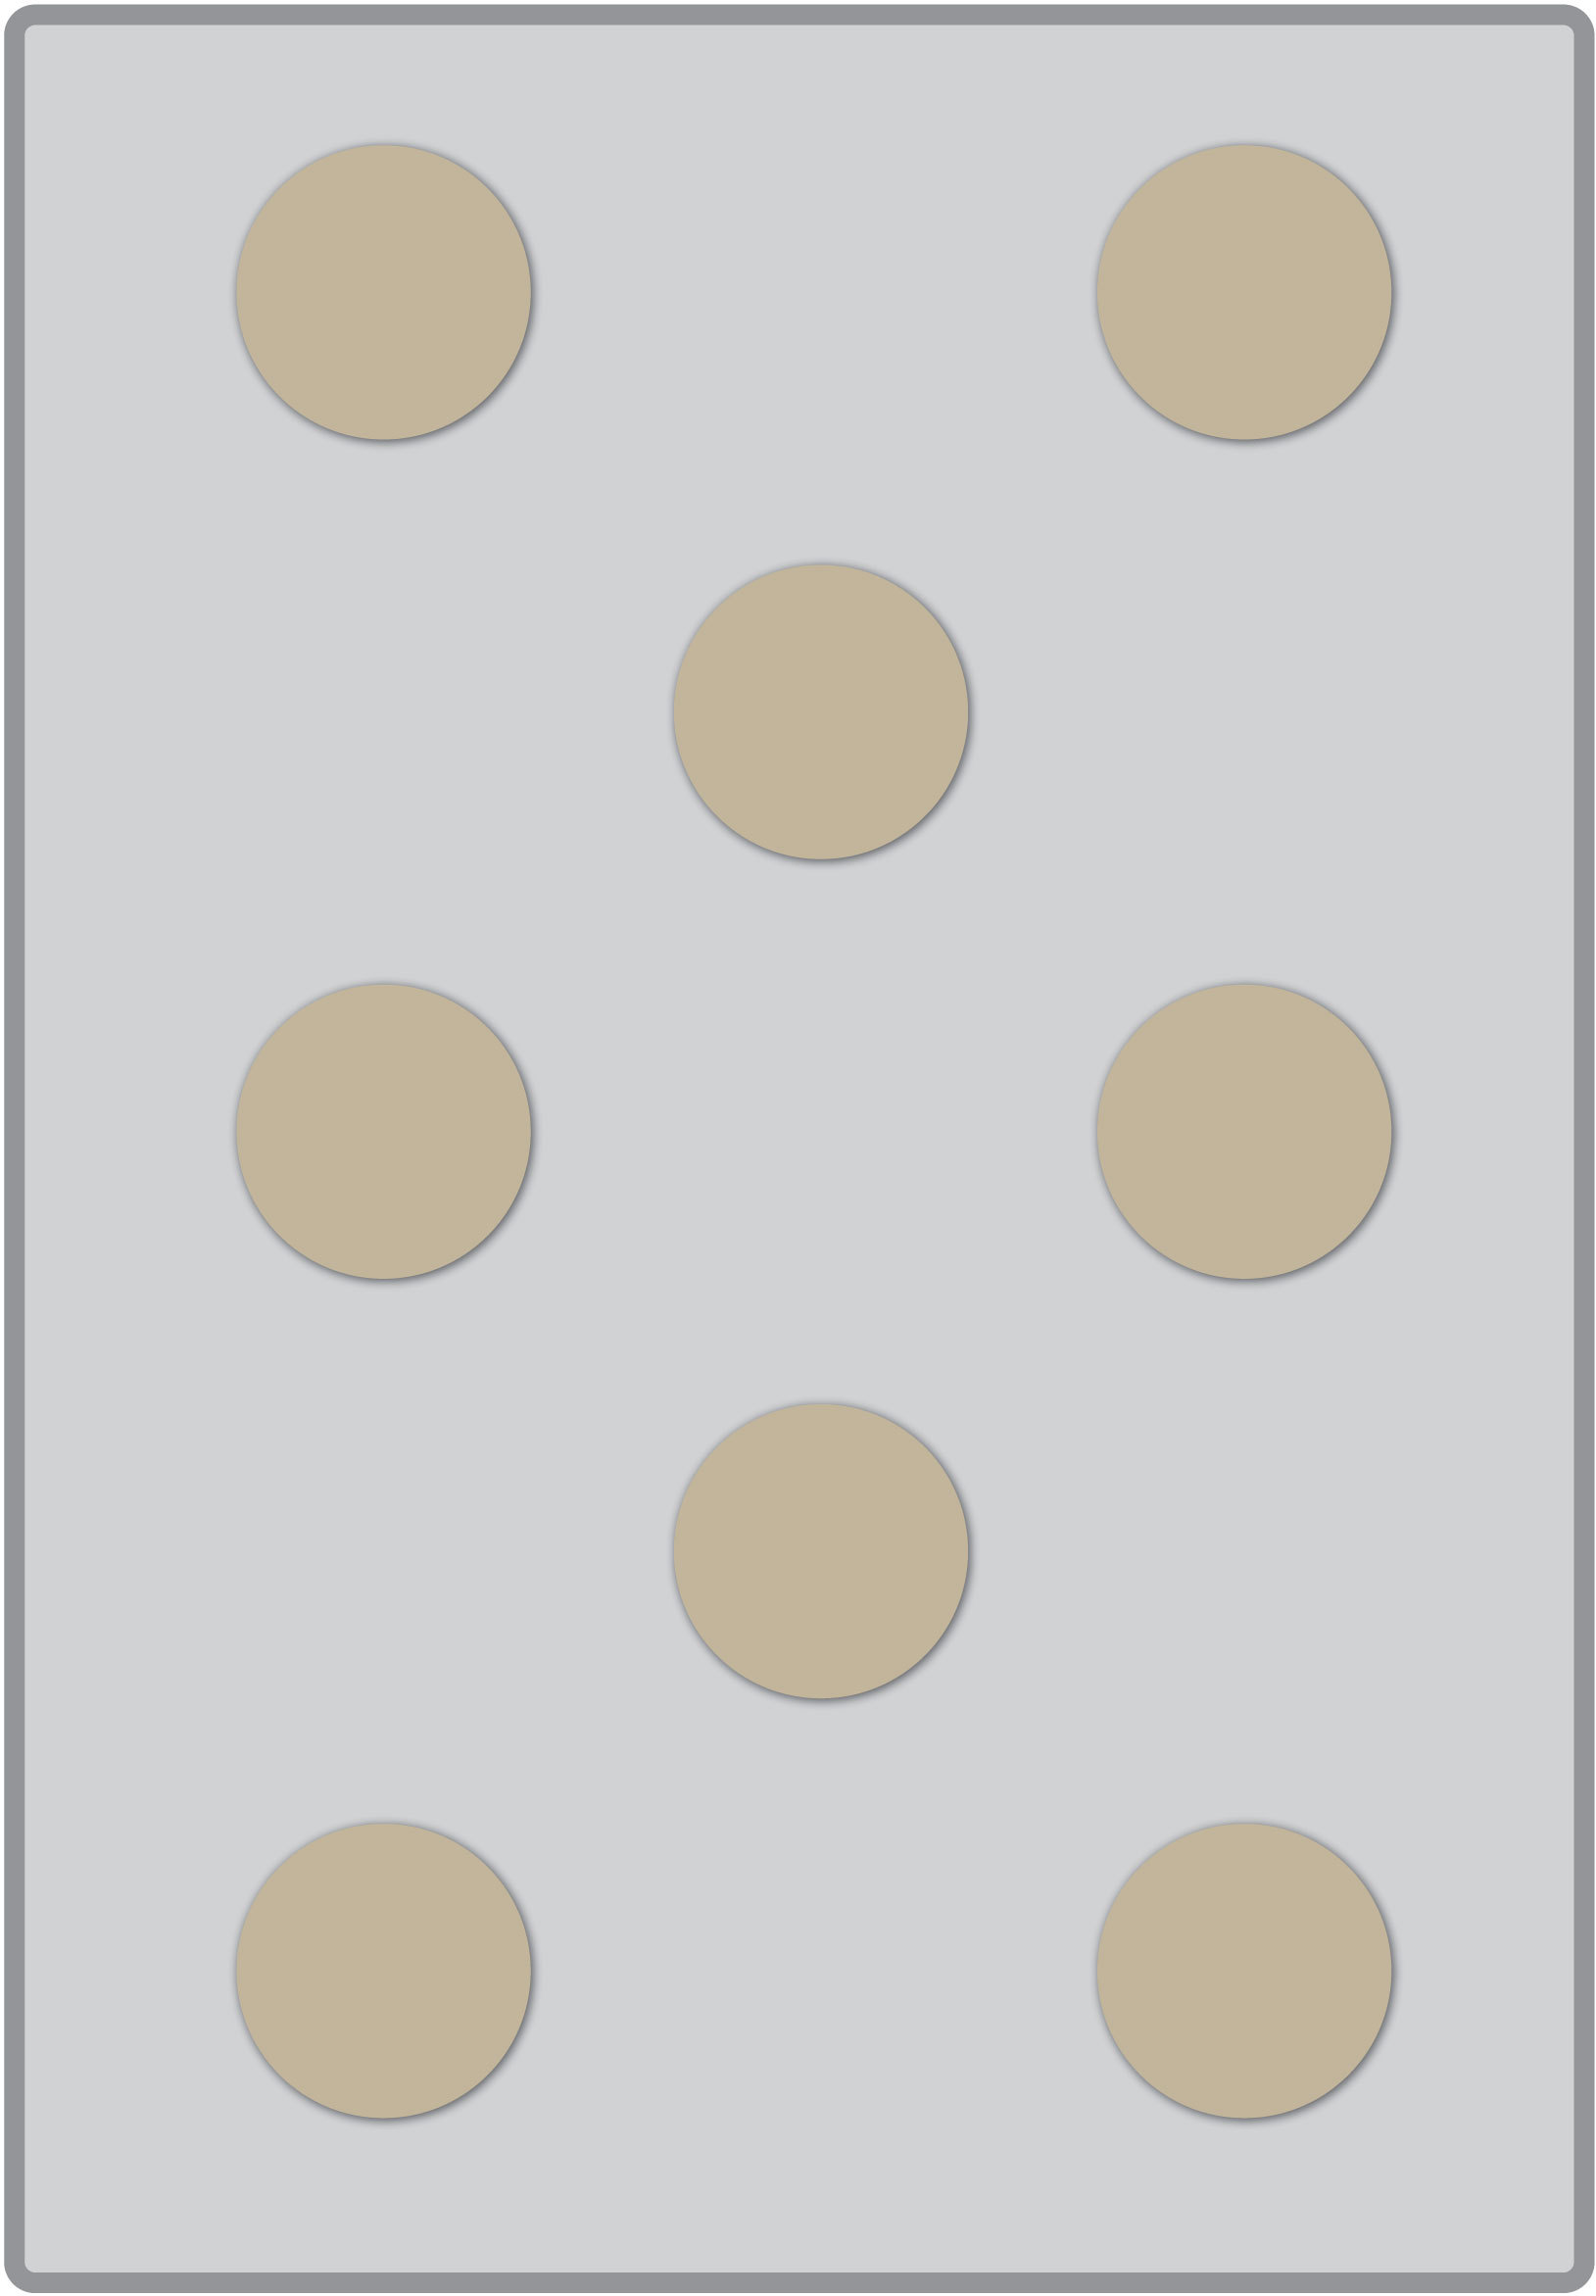 8 Cookie Layout